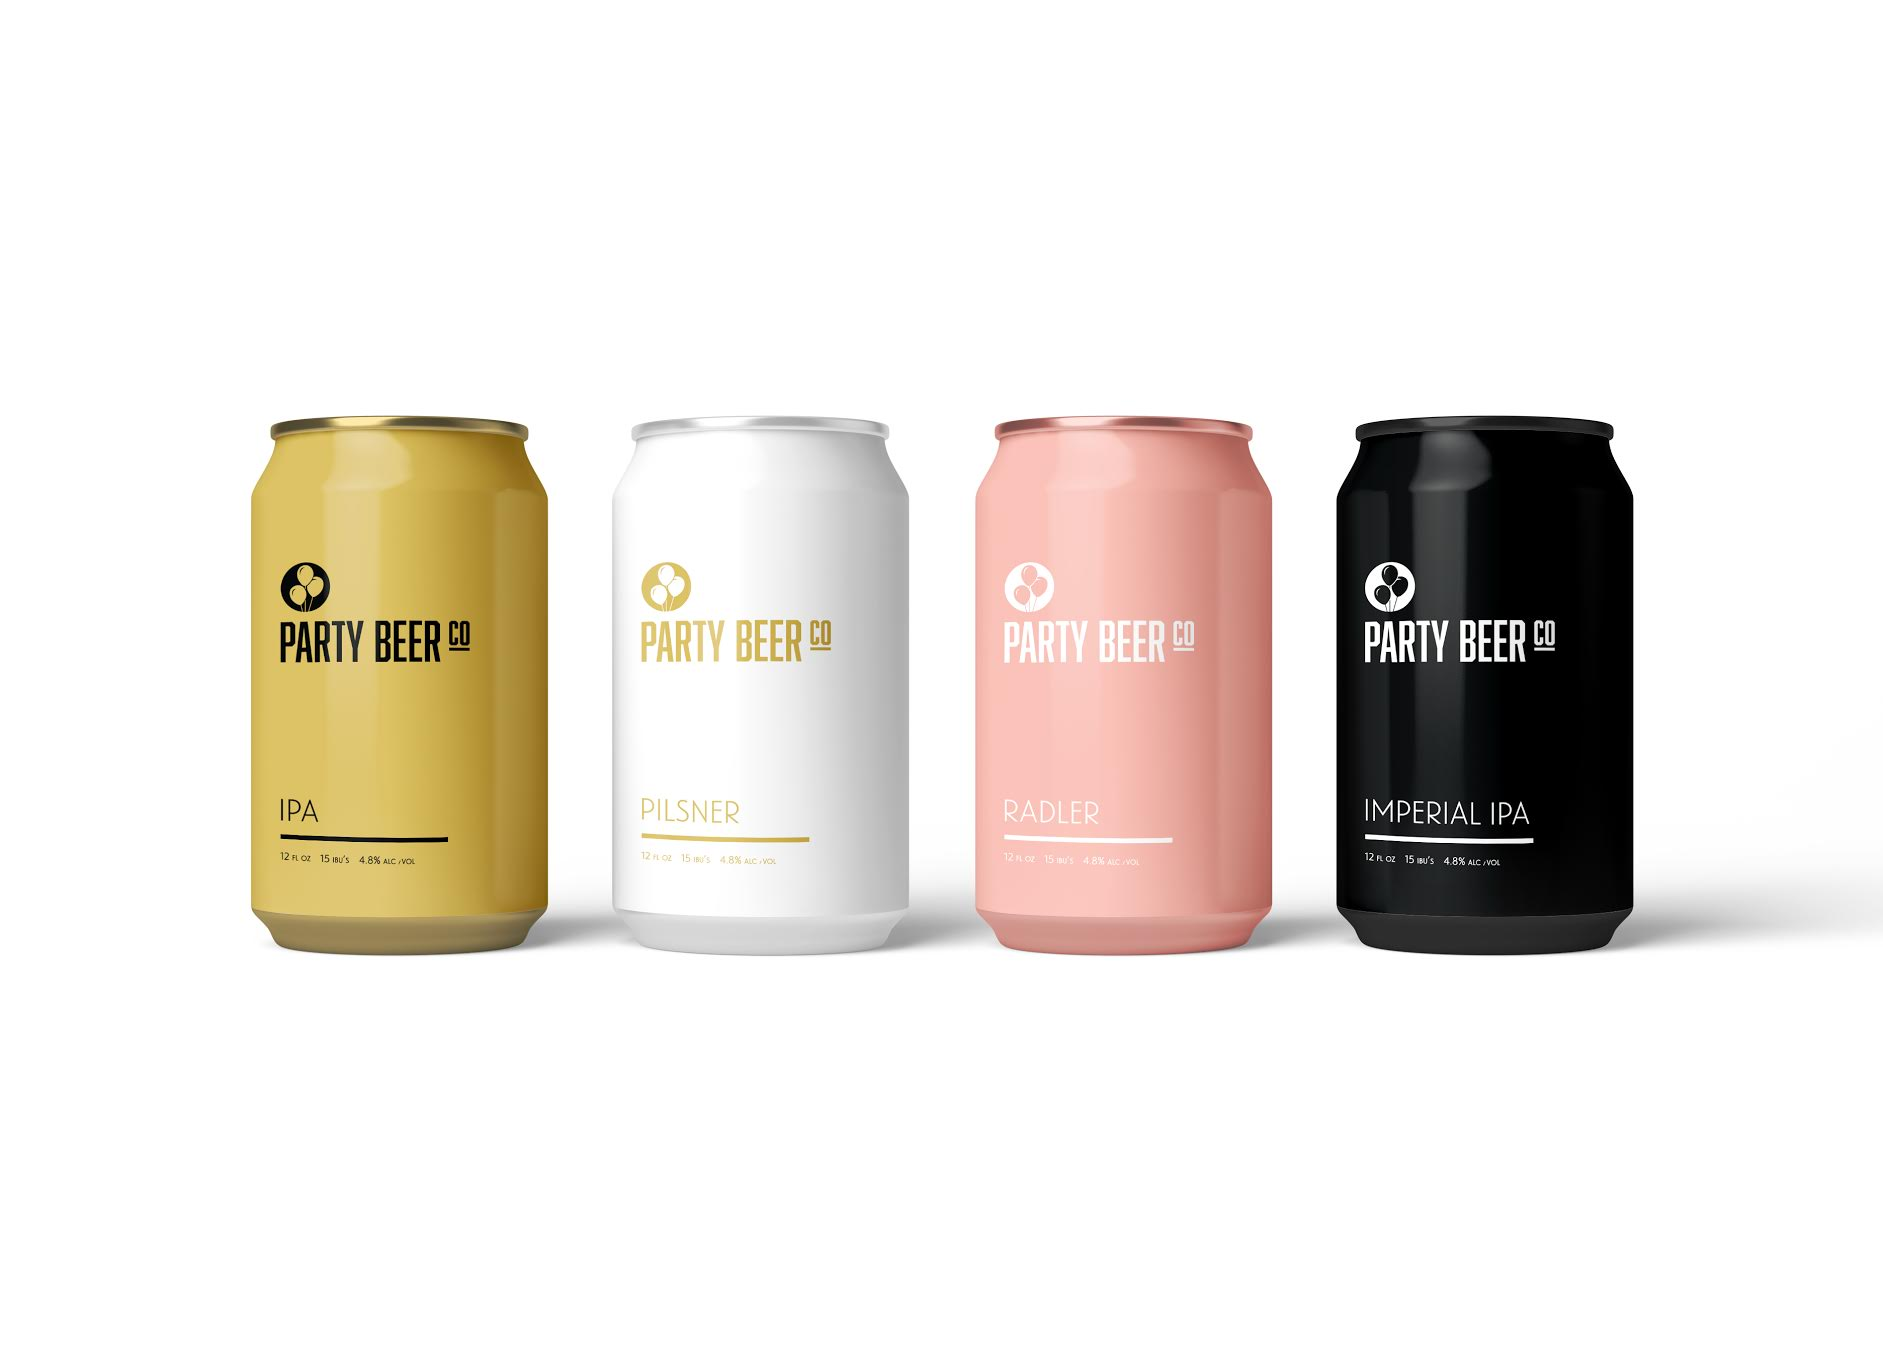 Party Beer Co.